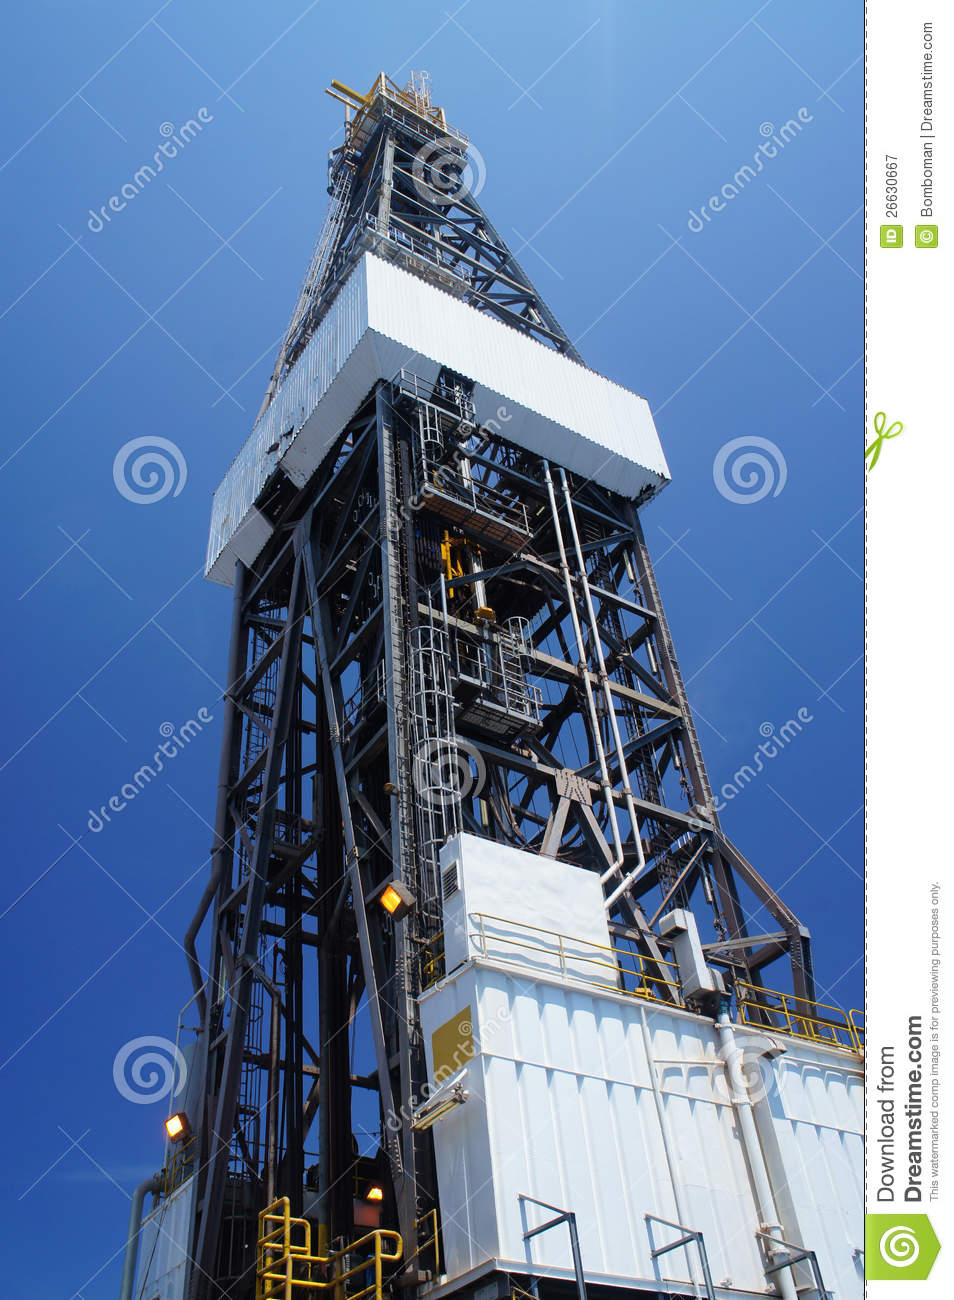 More similar stock images of ` Derrick of Offshore Jack Up Drilling ...